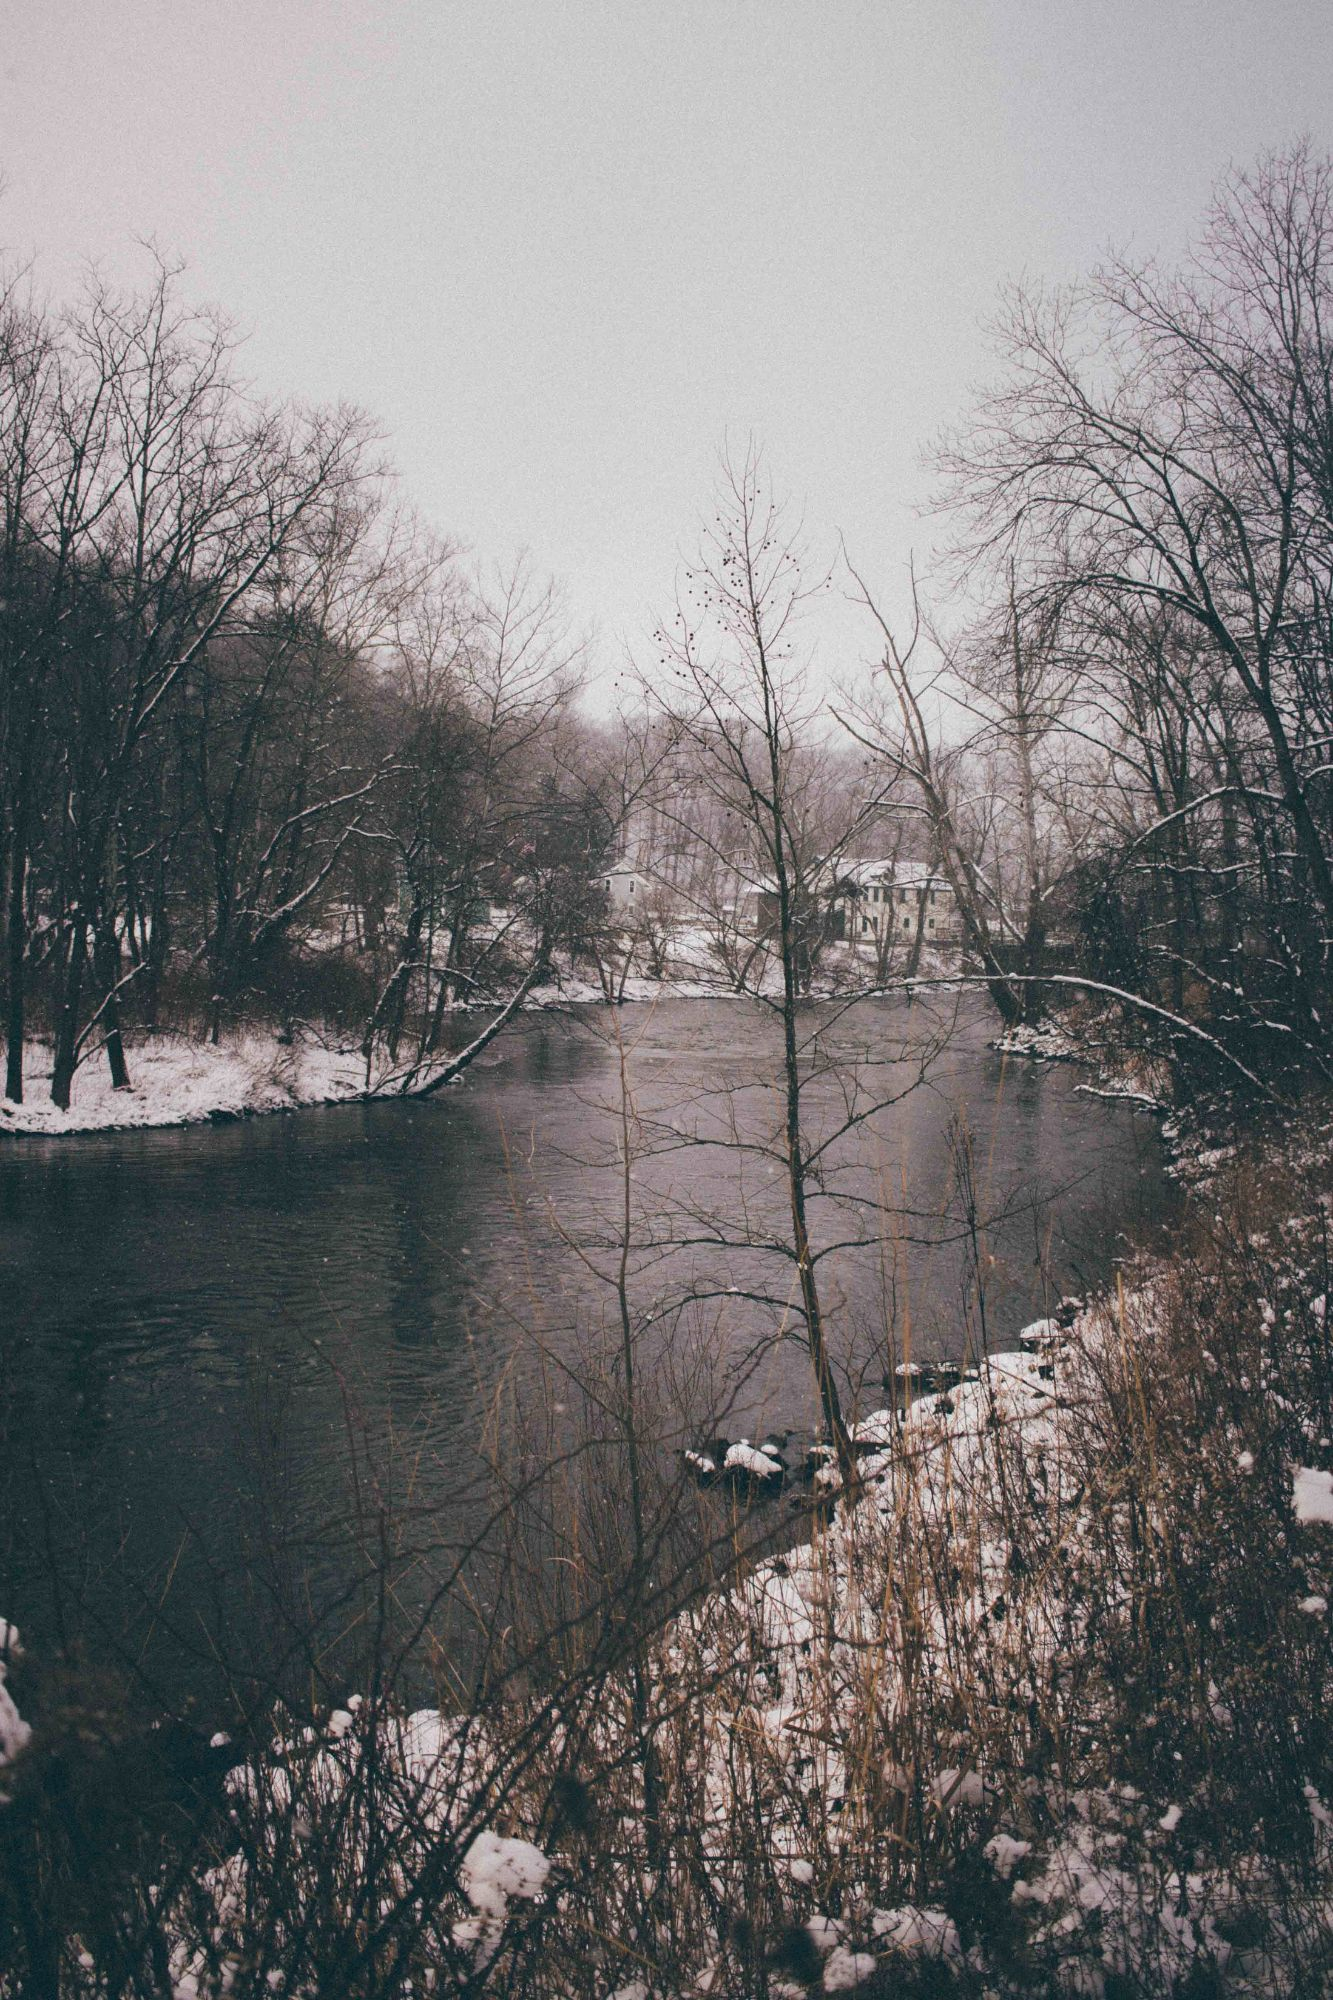 River in the winter with snowfall